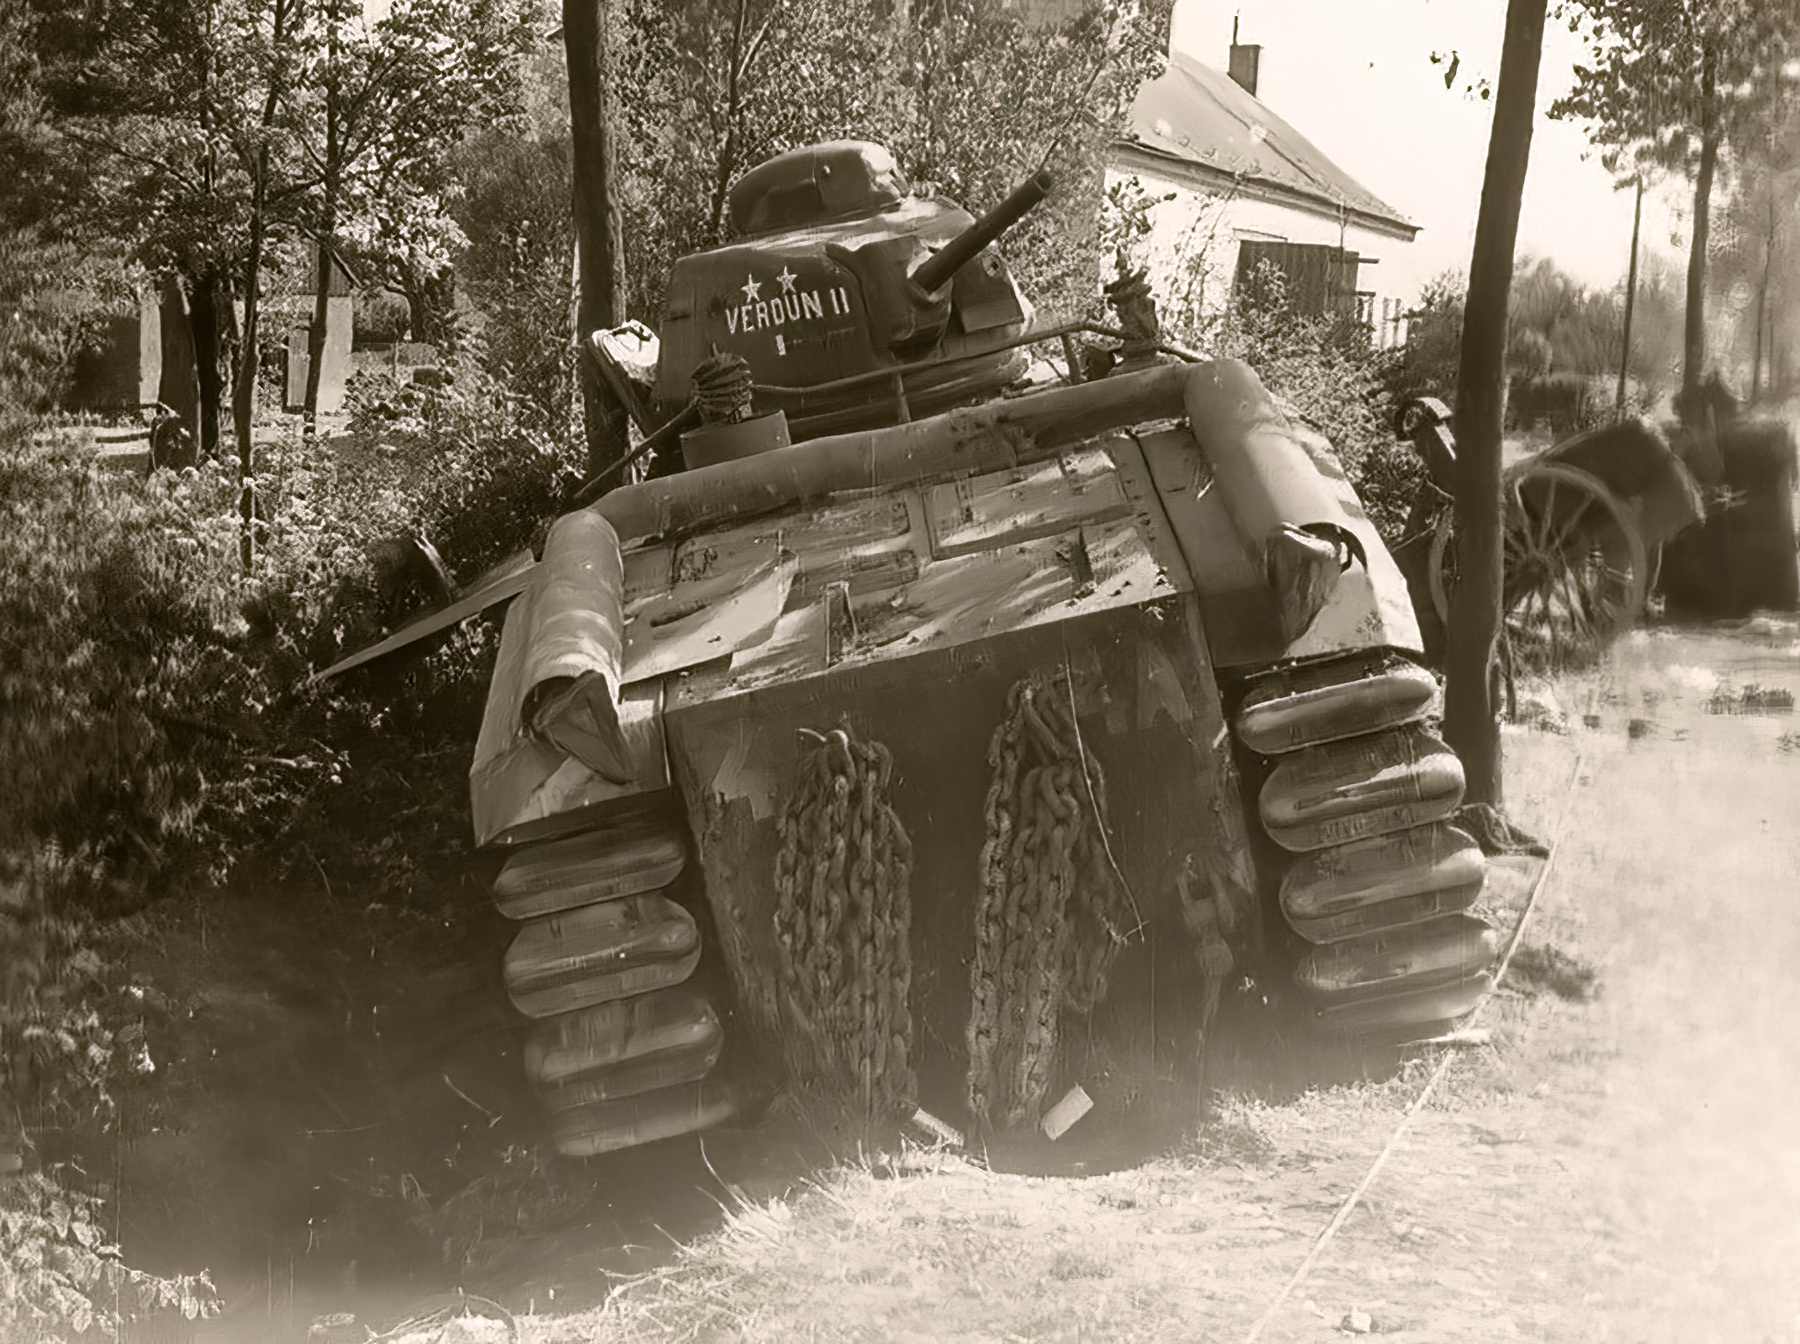 French Army Renault Char B1 named Verdun II abandoned during the battle of France 1940 ebay 01